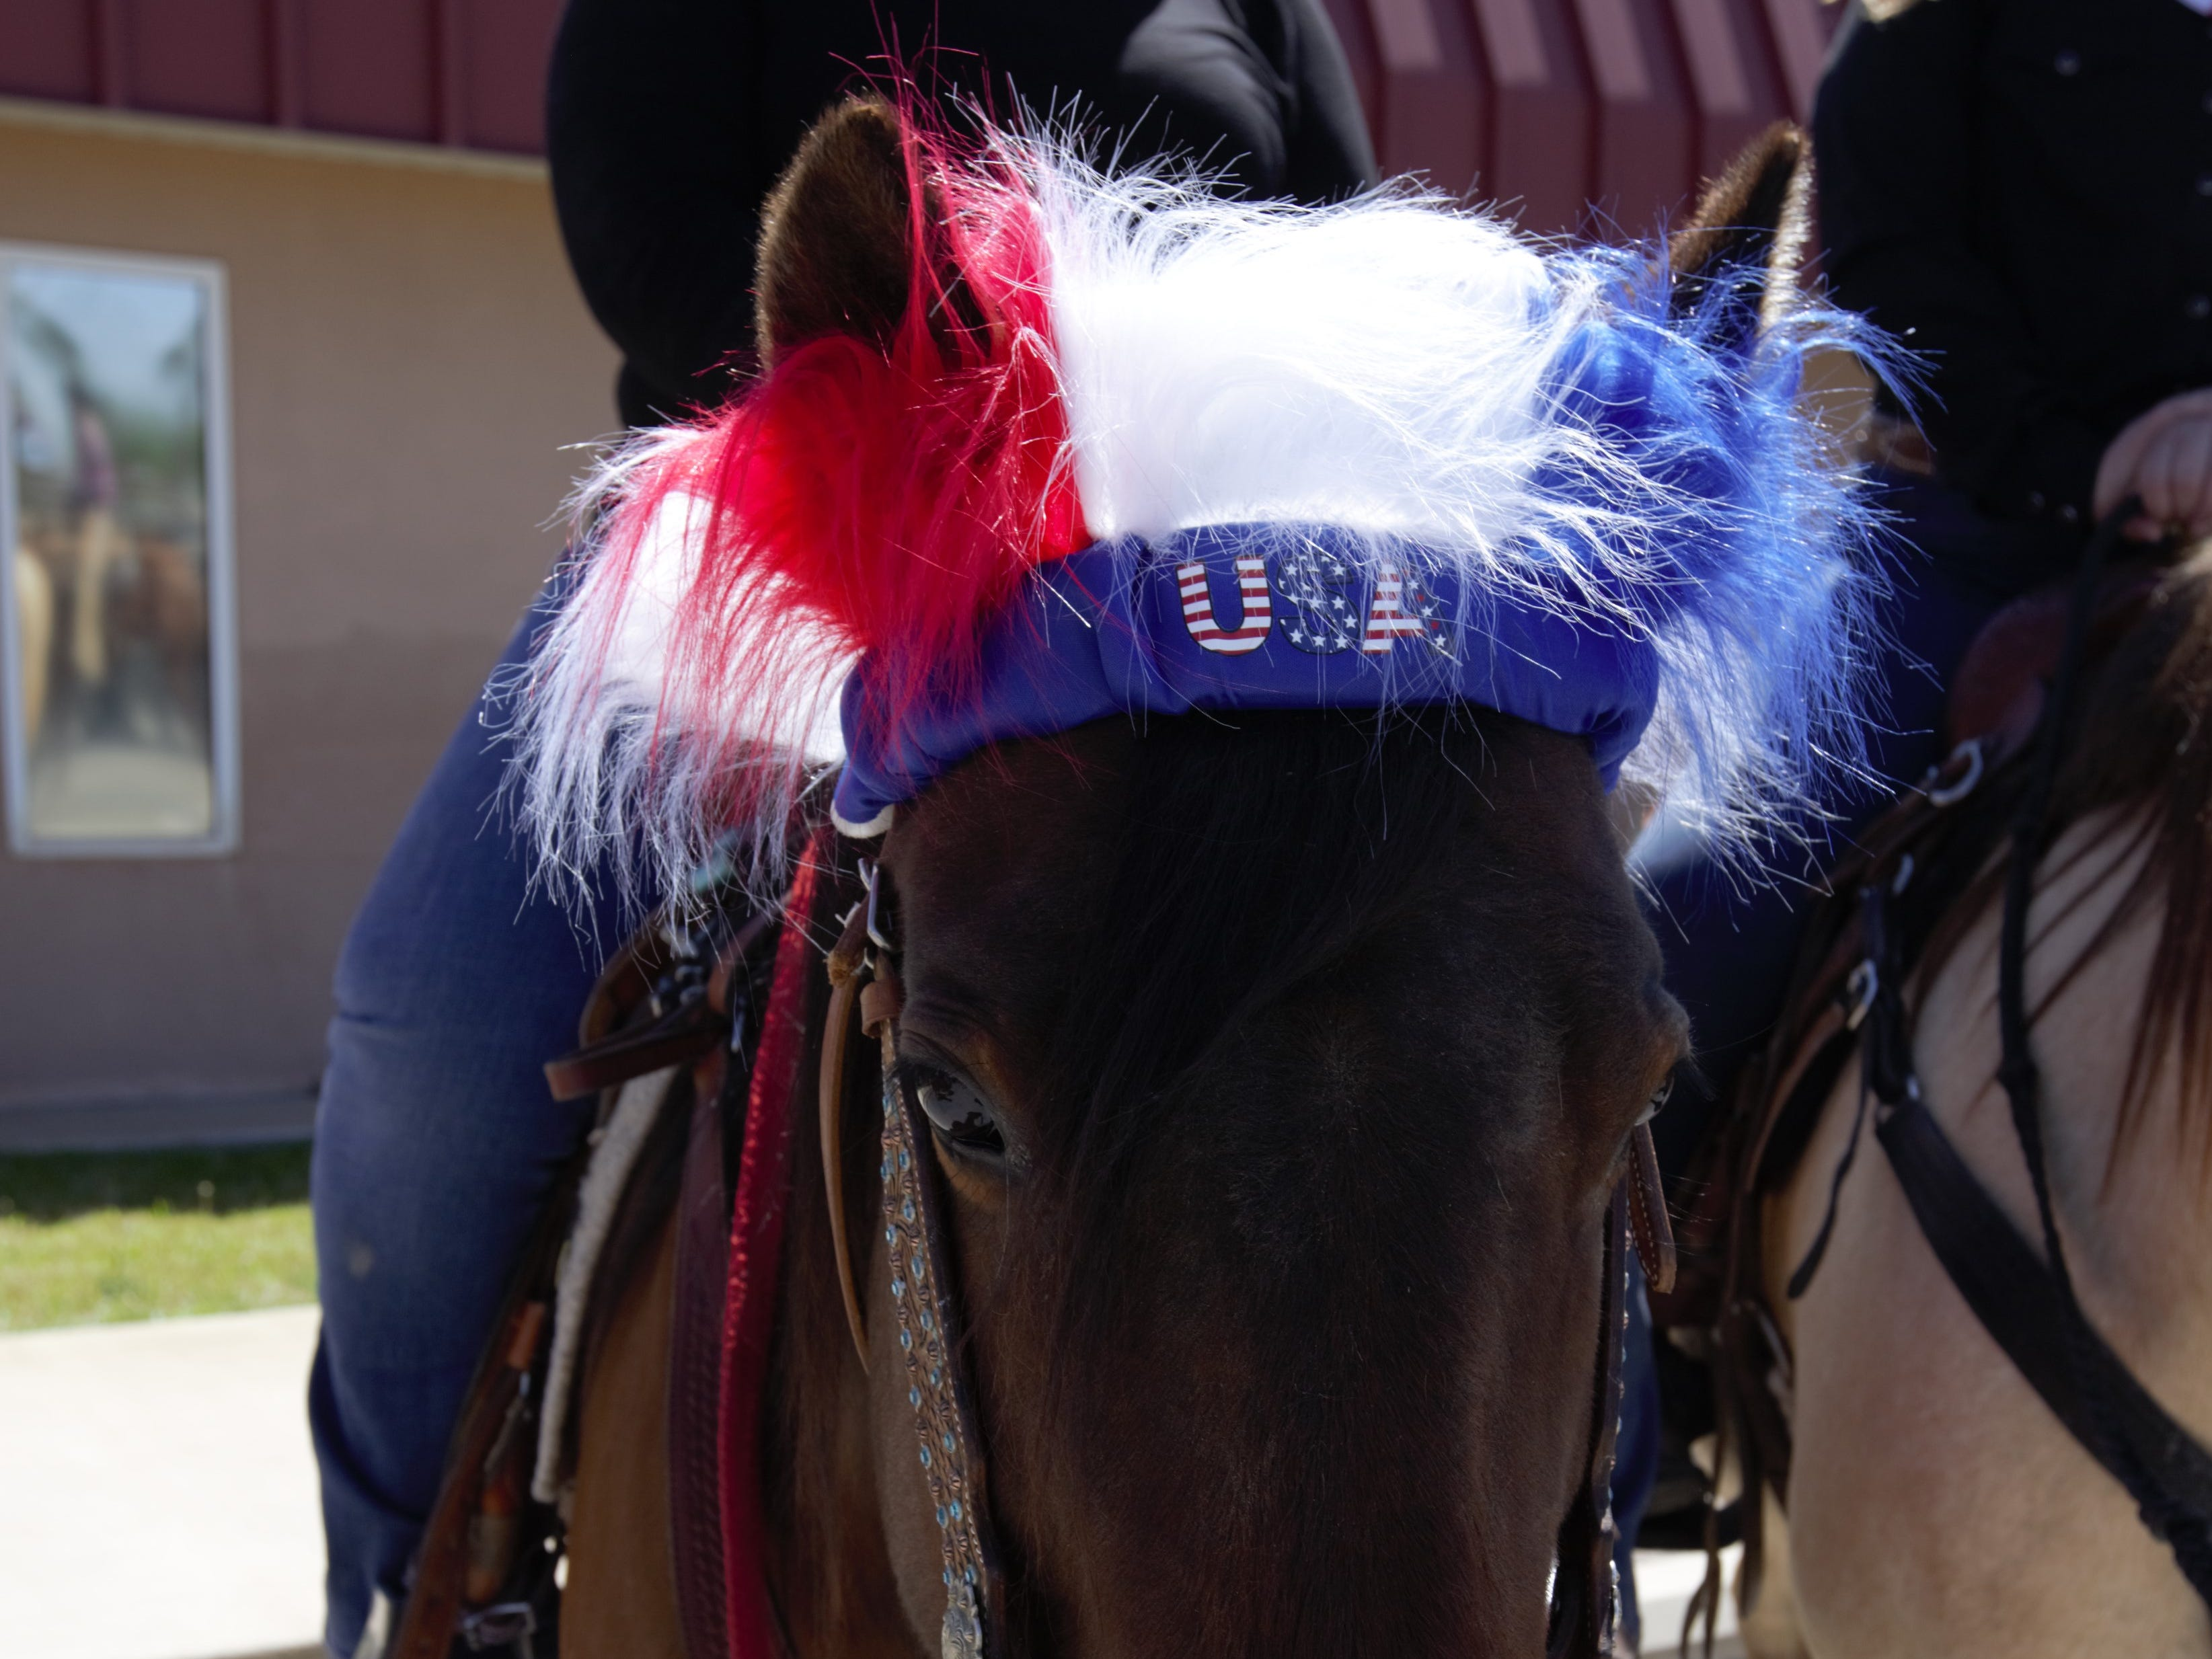 "Amanda Lackey, who lives on the East Mesa of Las Cruces, sits on her horse, June Bug, outfitted with patriotic gear. Lackey was one of dozens of horseback riders who turned out for the event, organized by Cowboys for Trump. ""I think they have a lot of good ideals, and I support them in everything they do,"" she said of the group."